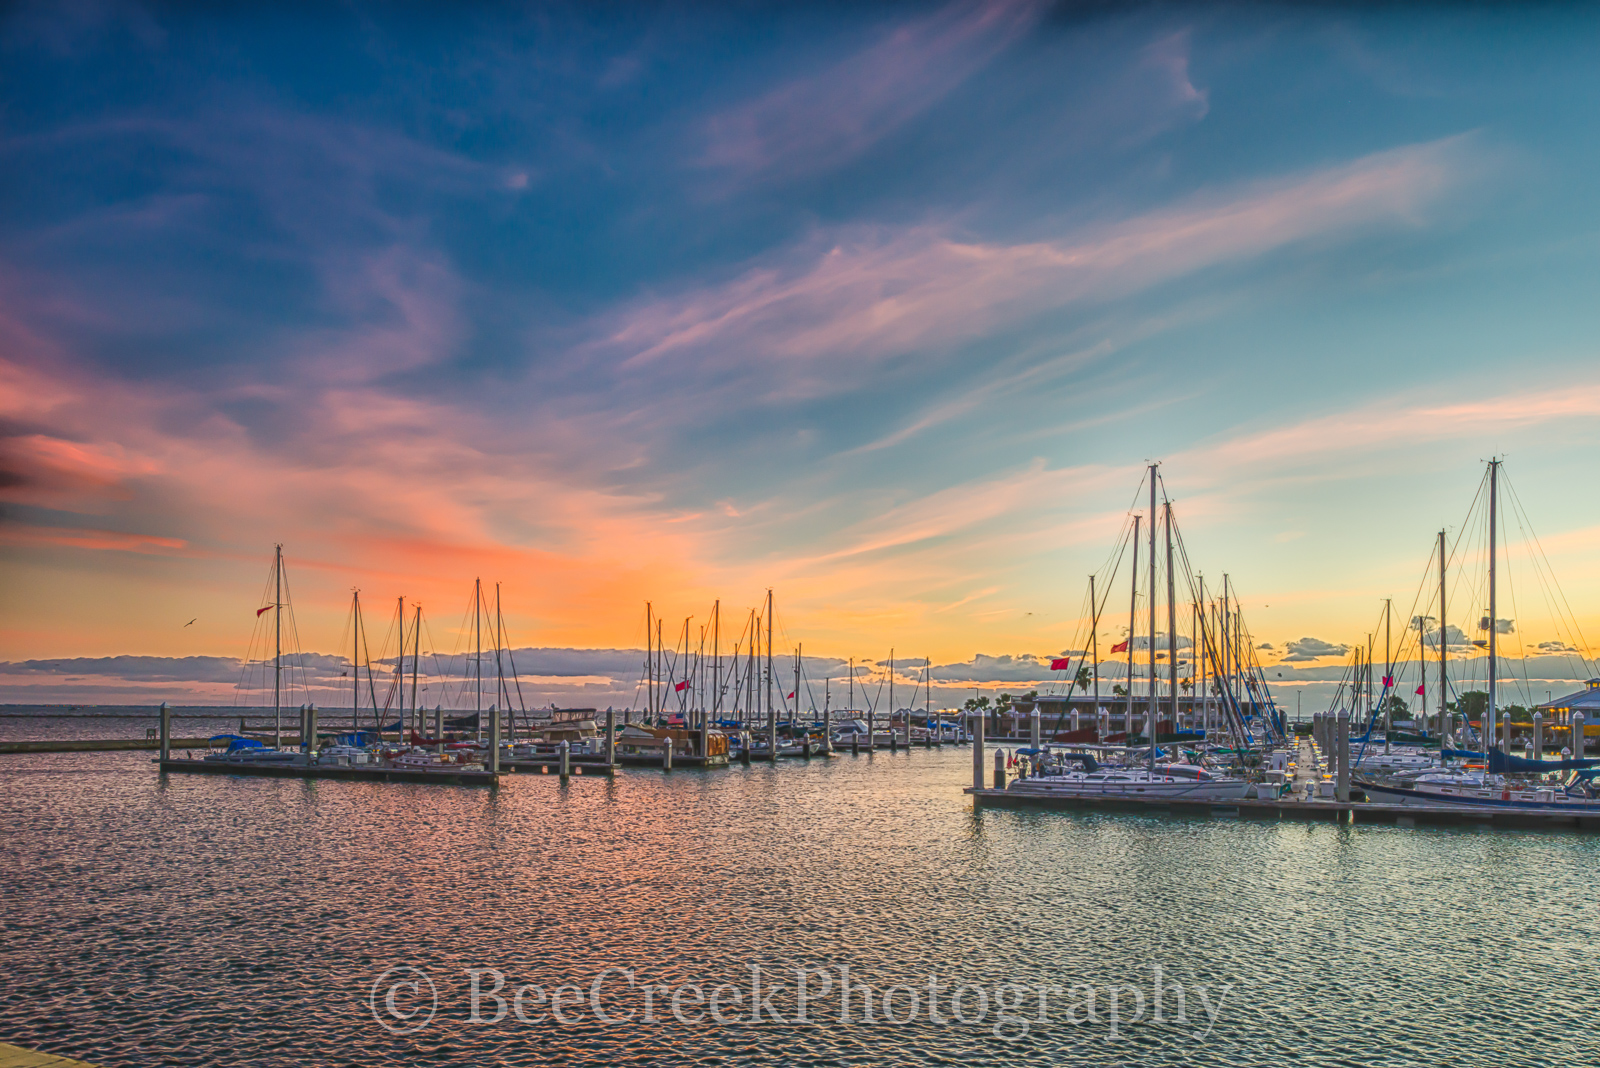 Corpus Christi sunrise, Sunrise, Texas Coast, bay, boats, city, coastal, colorful sky, docks, gulf, gulf of mexico, landscape, landscapes, marina, ocean, seascape, seawall, photo